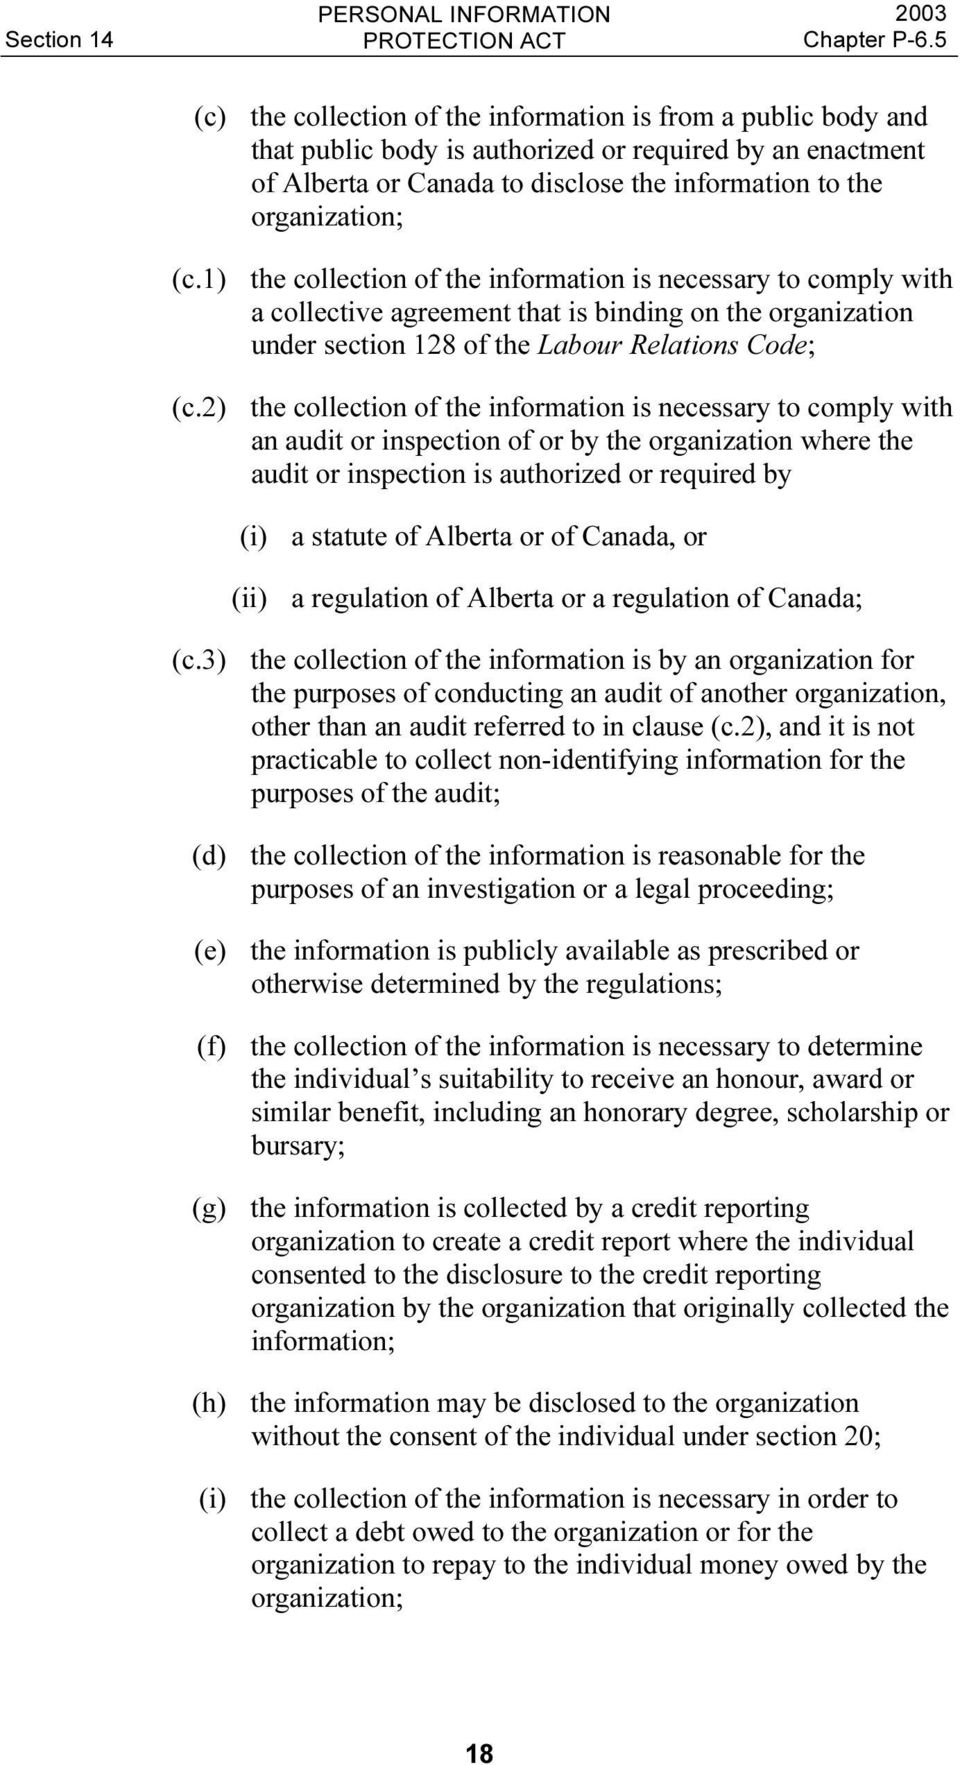 2) the collection of the information is necessary to comply with an audit or inspection of or by the organization where the audit or inspection is authorized or required by (i) a statute of Alberta